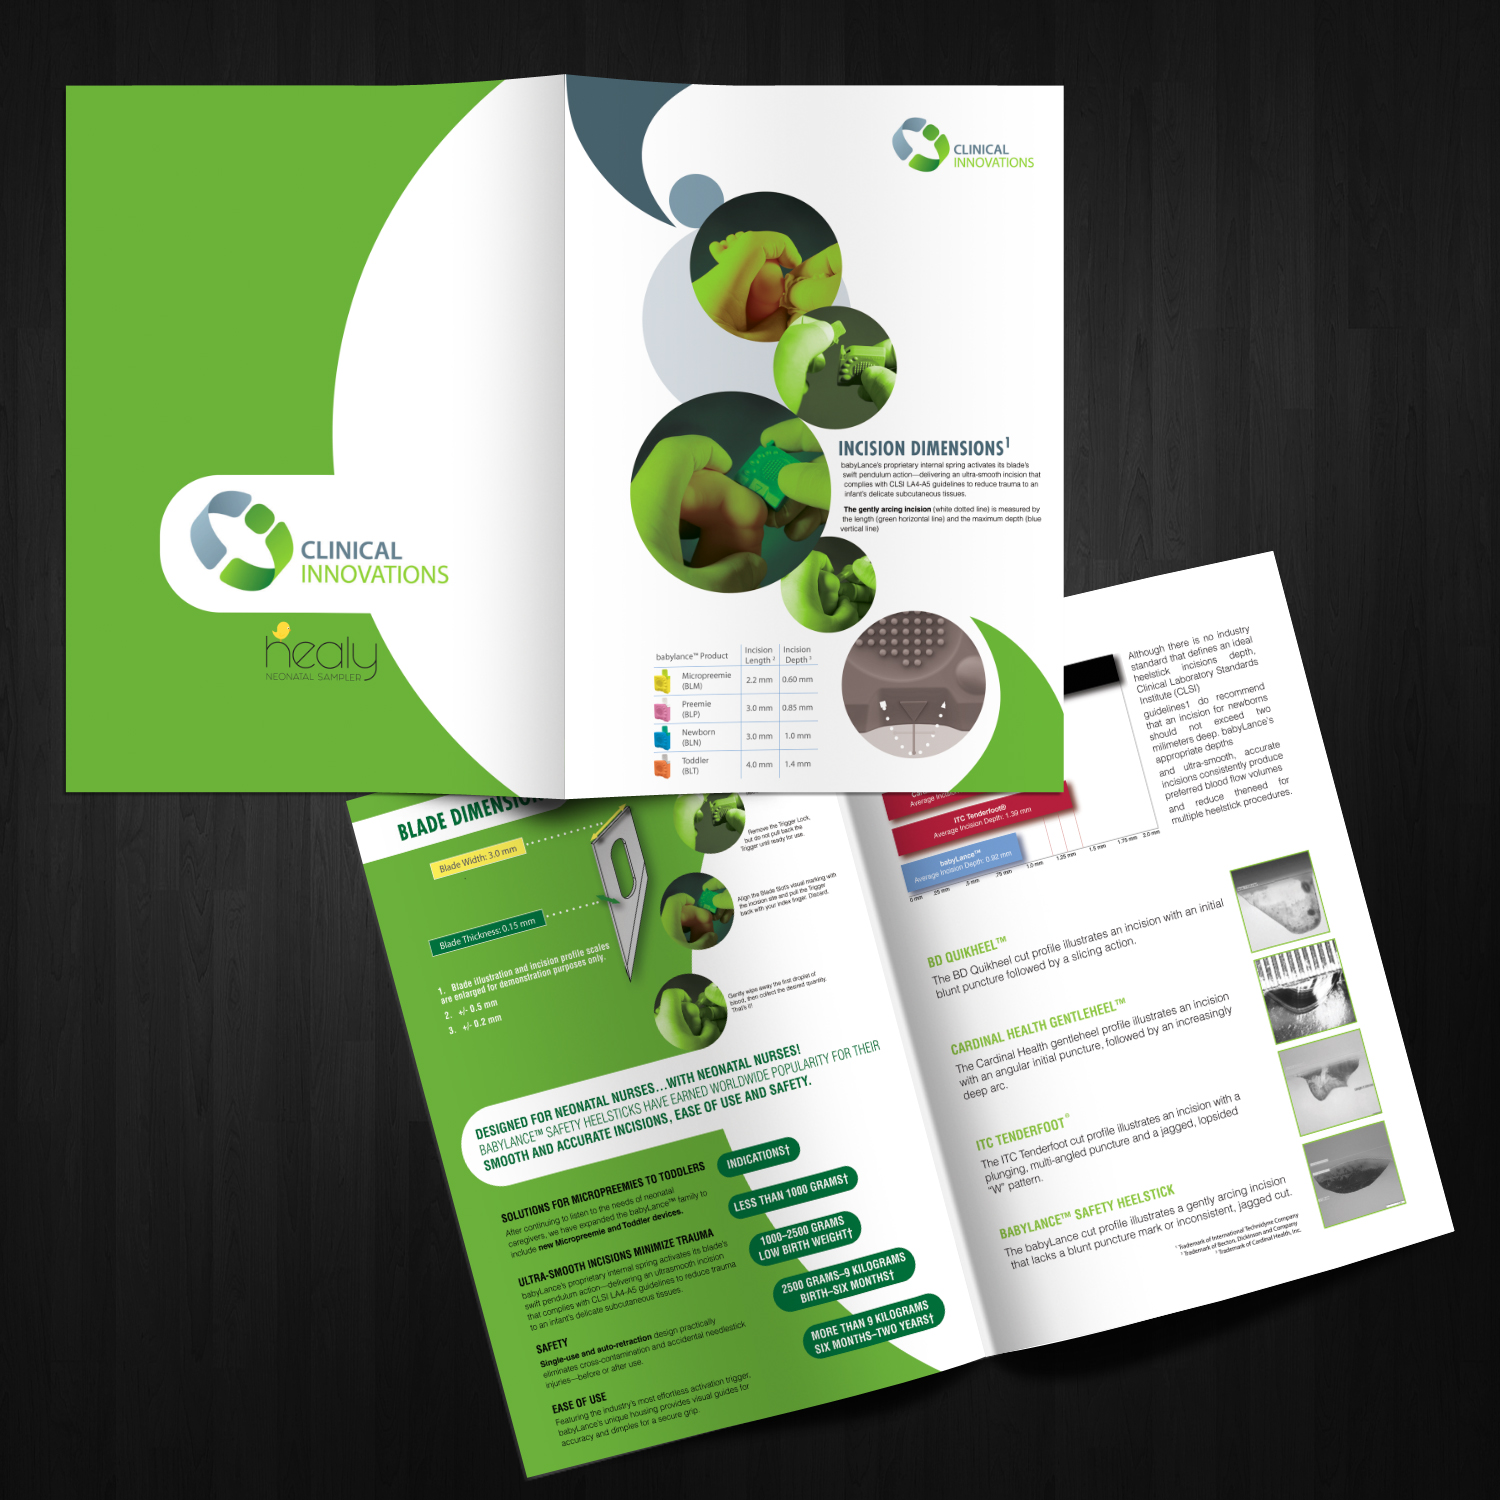 Personable playful medical equipment brochure design for for Medical product design companies